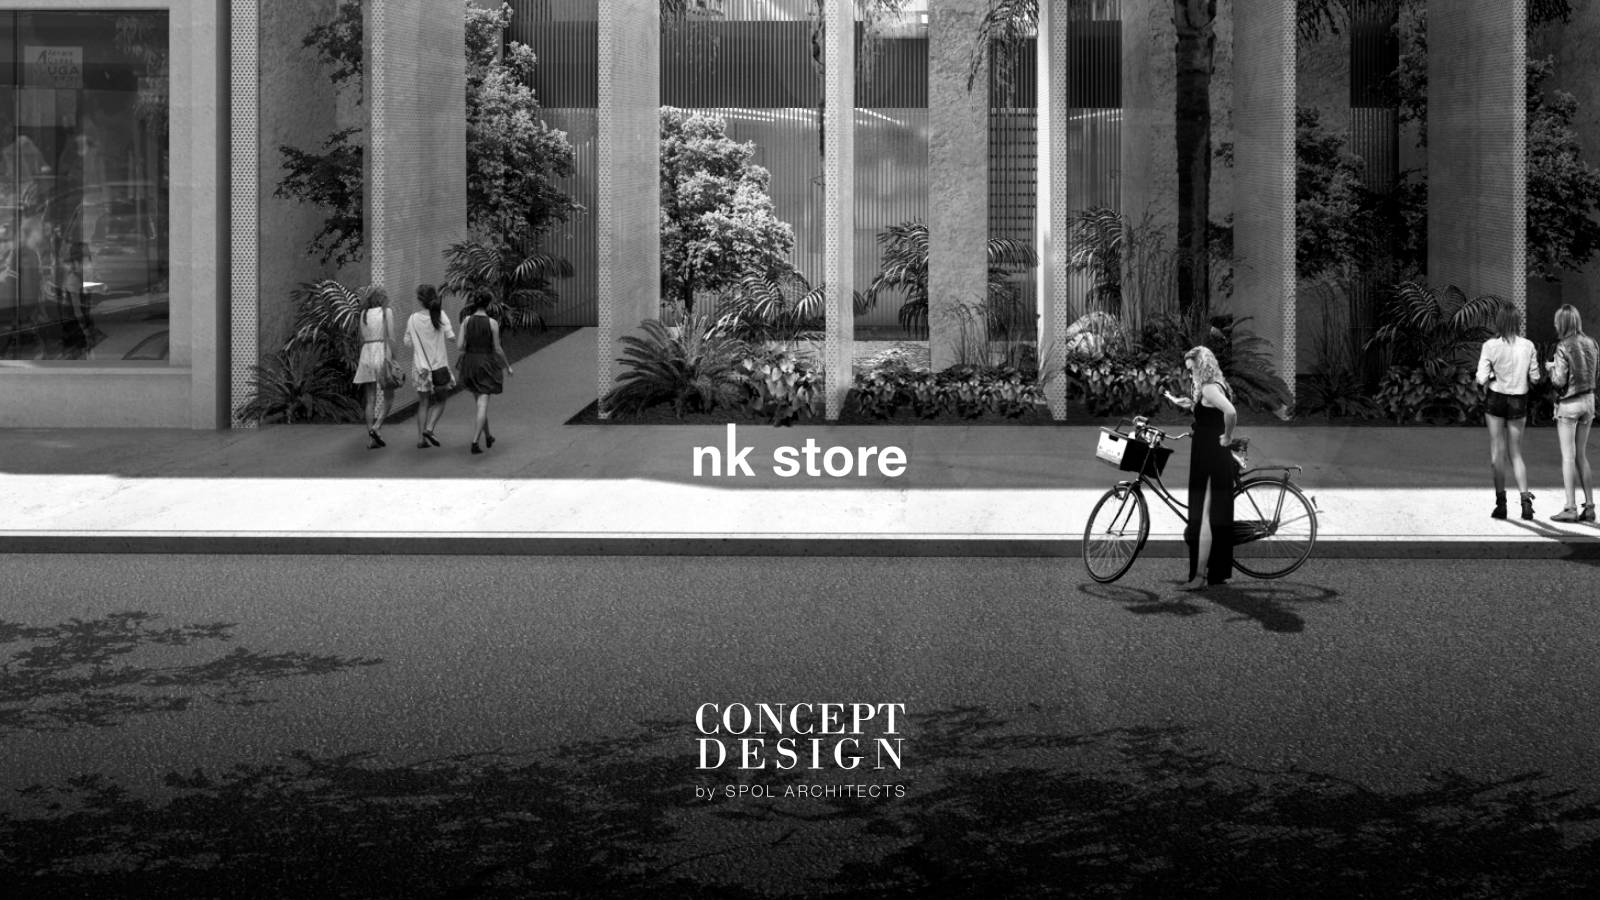 NK STORE - NK Store - SPOL Architects